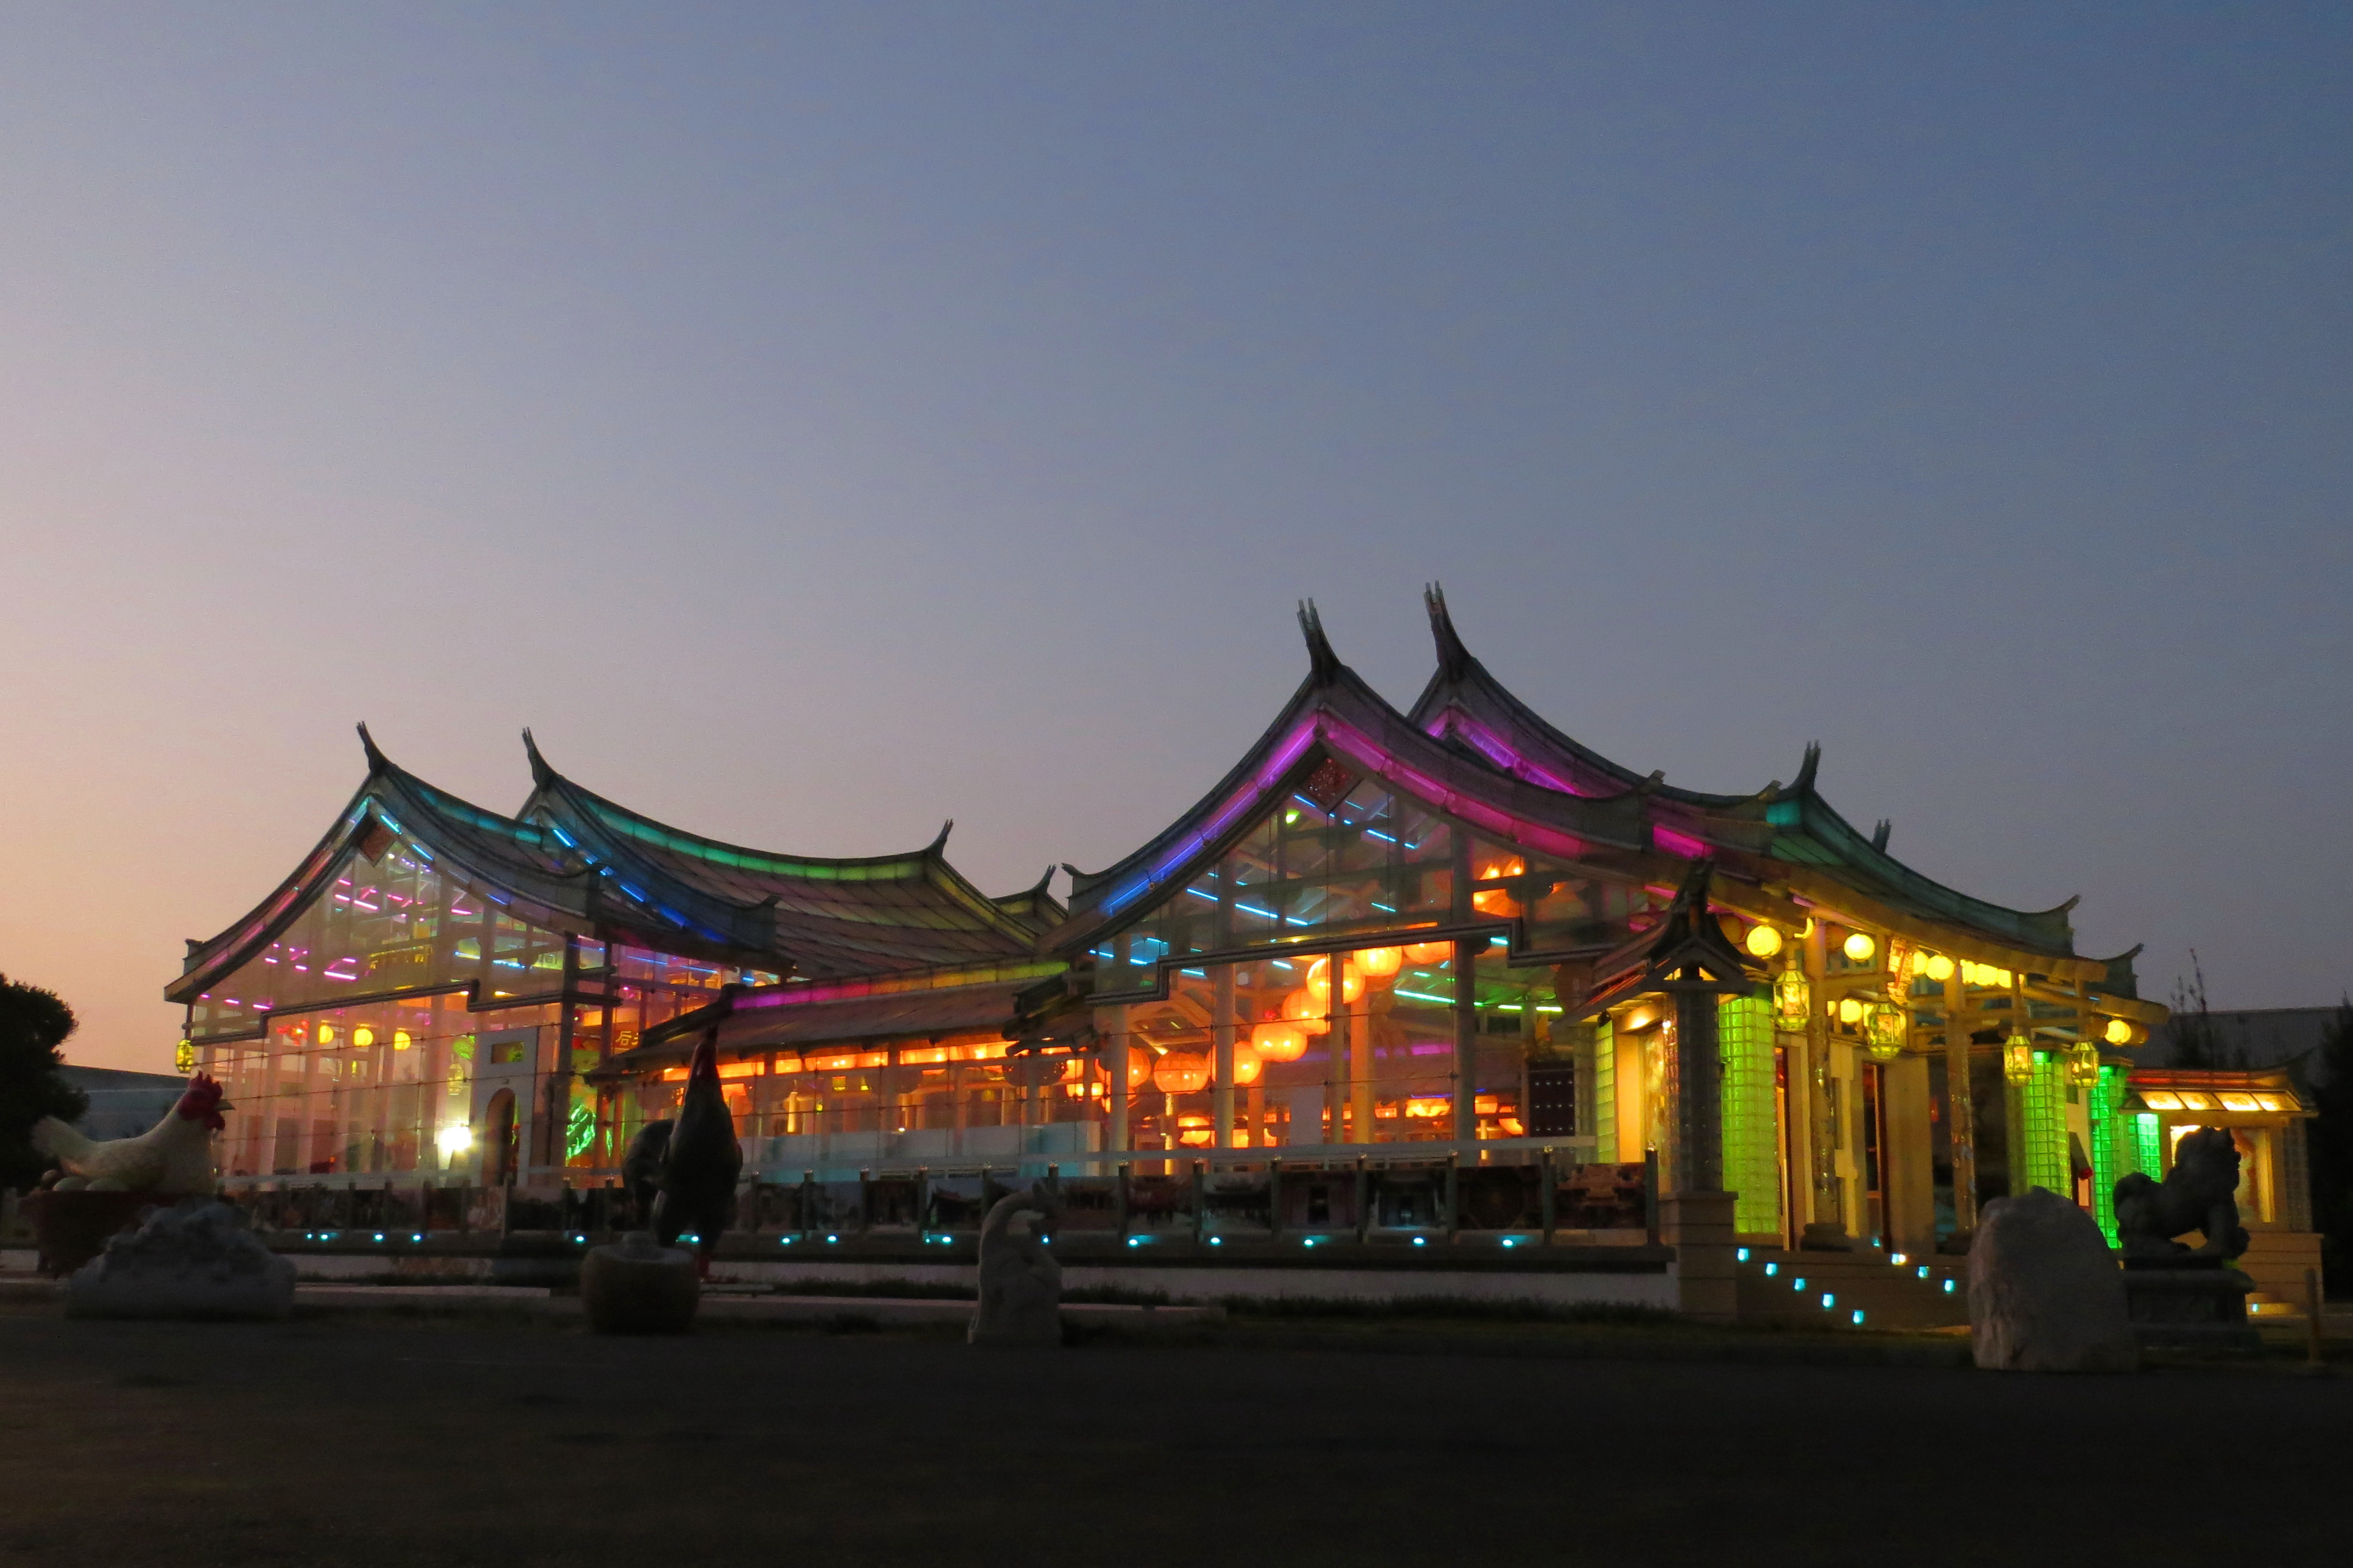 changhua city dating site List of railway roundhouses this is a list of railway roundhousesa roundhouse is a building used for servicing locomotives, large, circular or semicircular structures often located adjacent to or surrounding turntables.